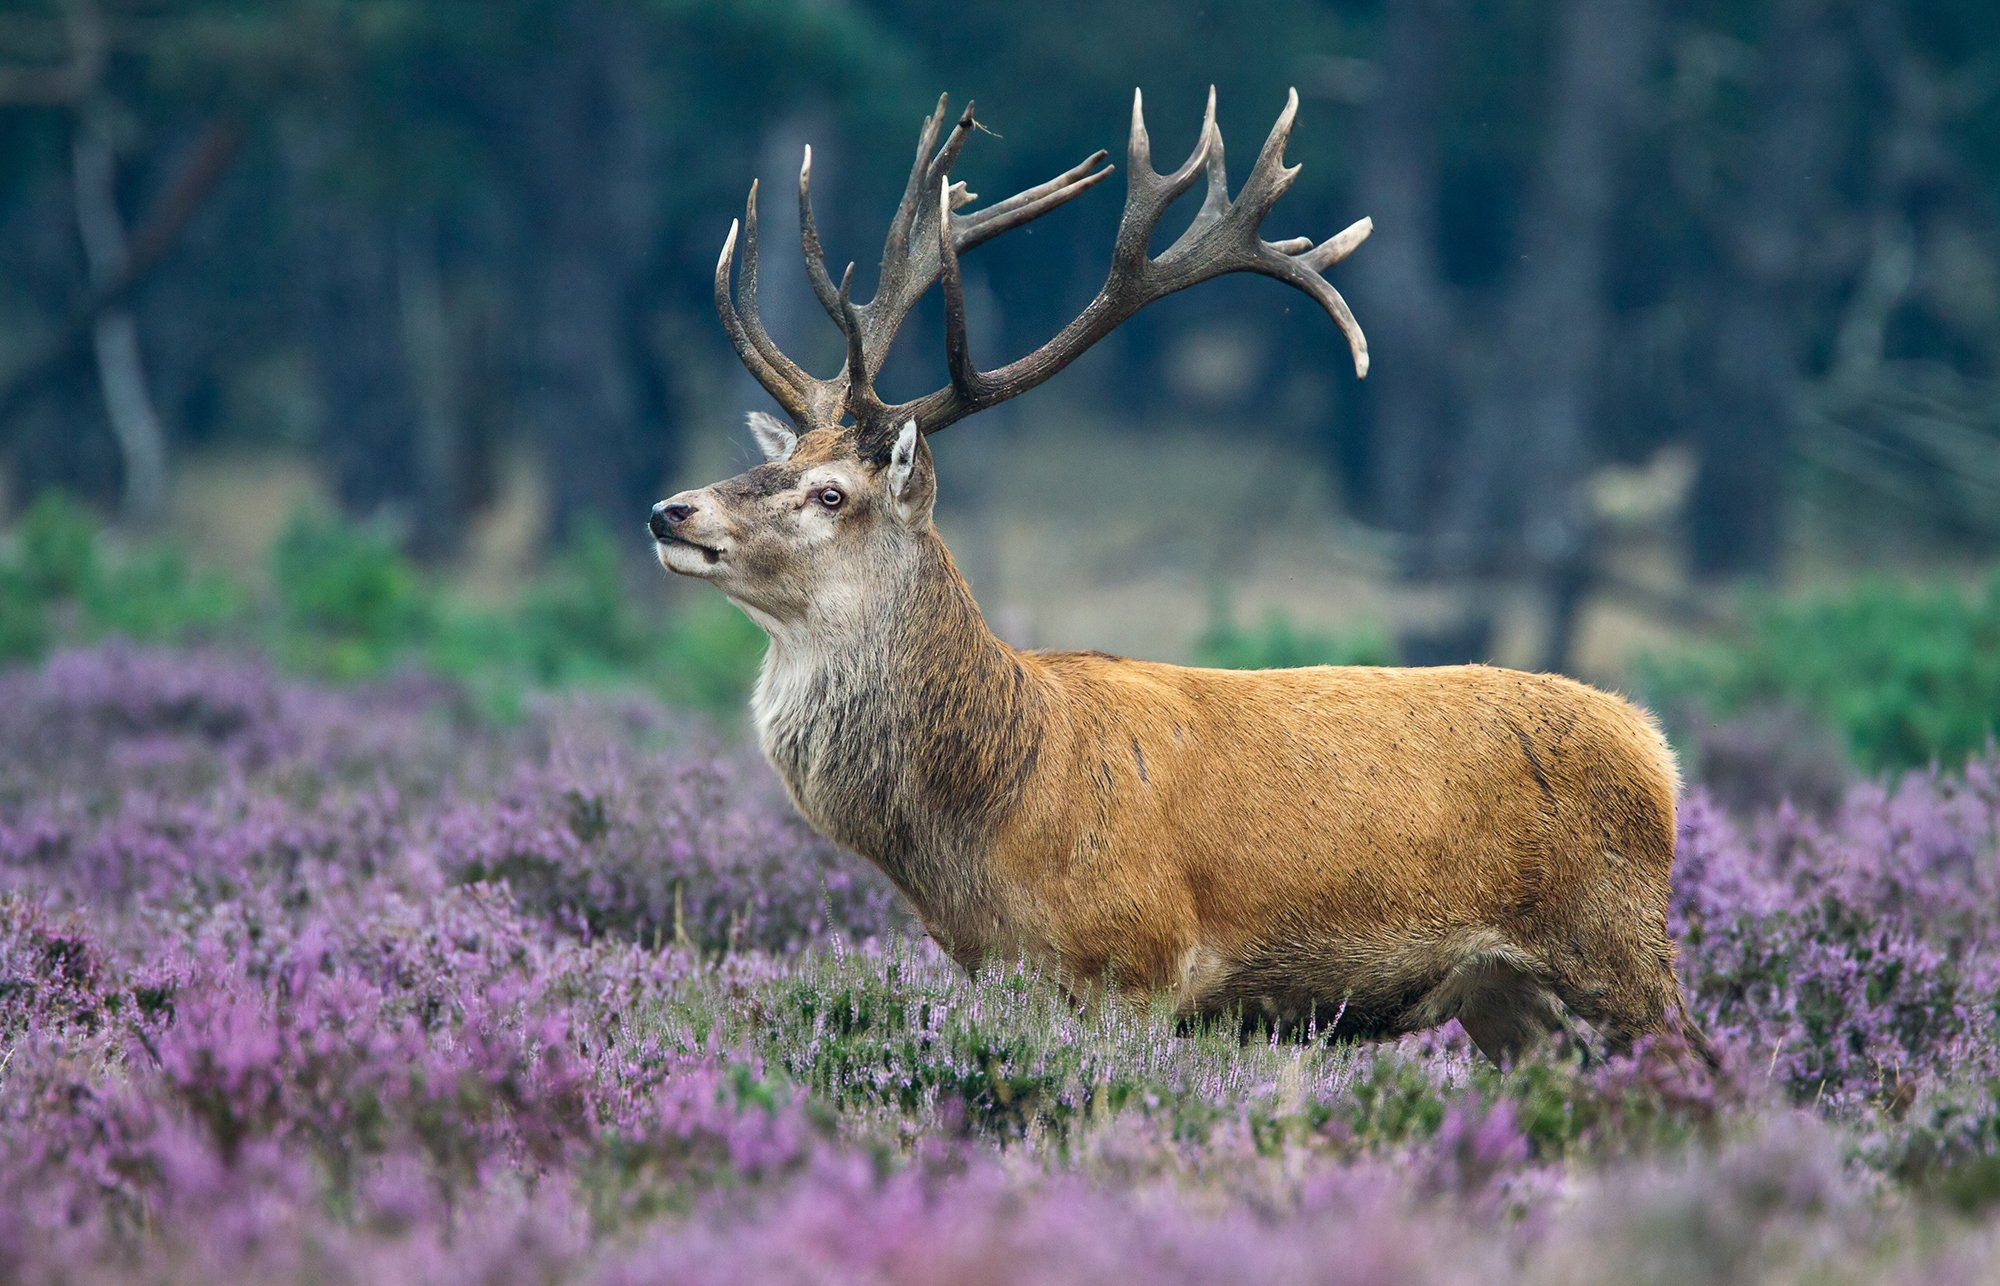 Red deer during mating season in the heathlands of De Hoge Veluwe national park